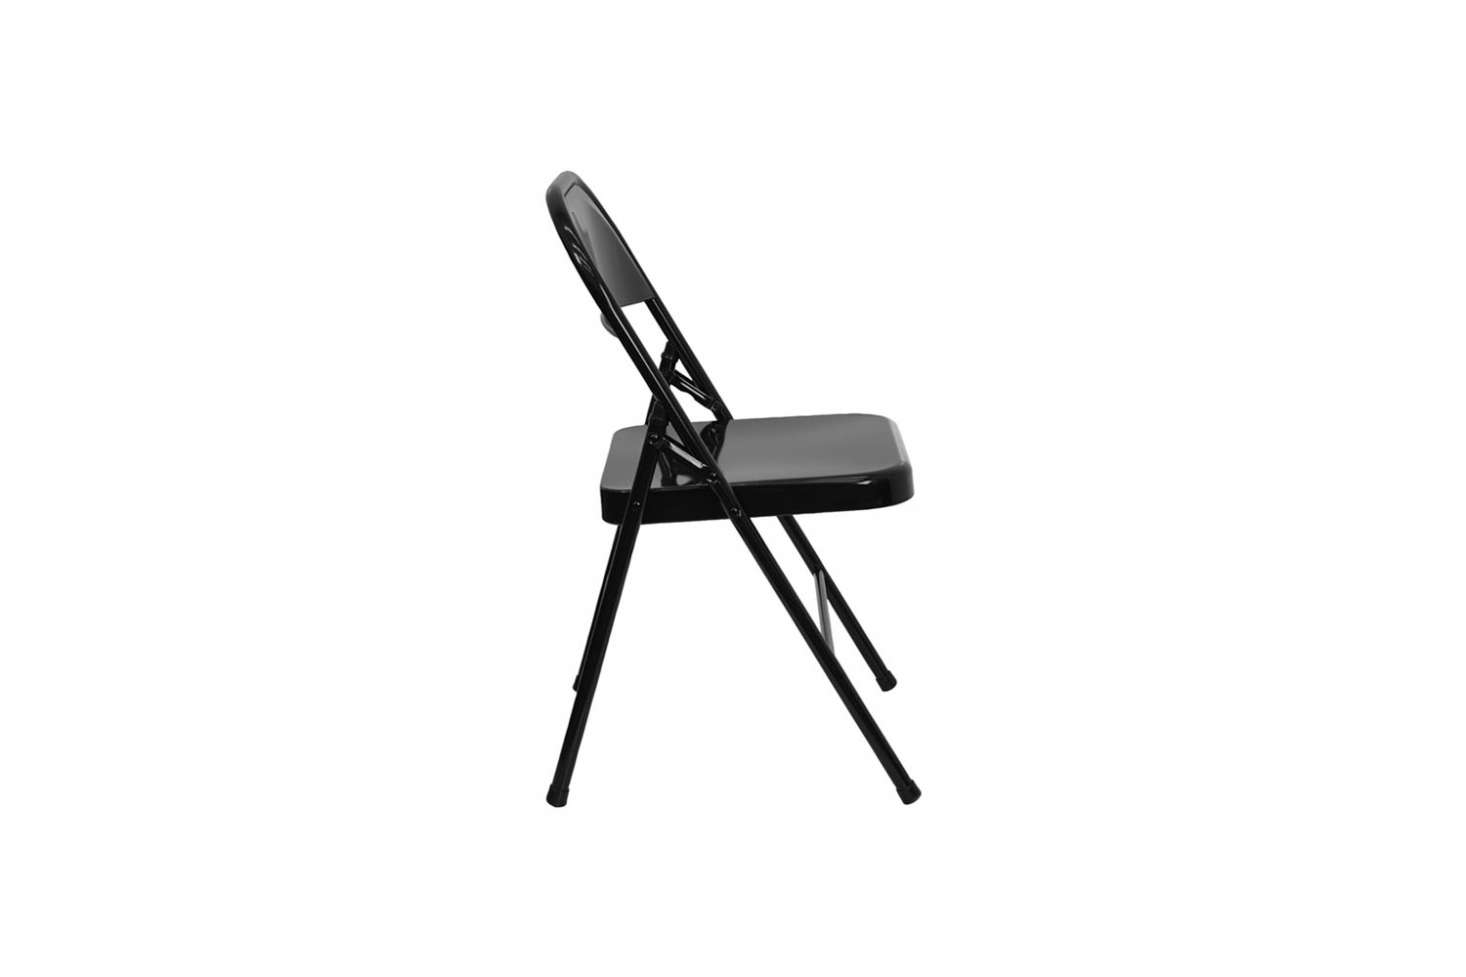 The Classic Hercules Black Metal Chair Is $11.49 At Folding Chairs 4 Less.